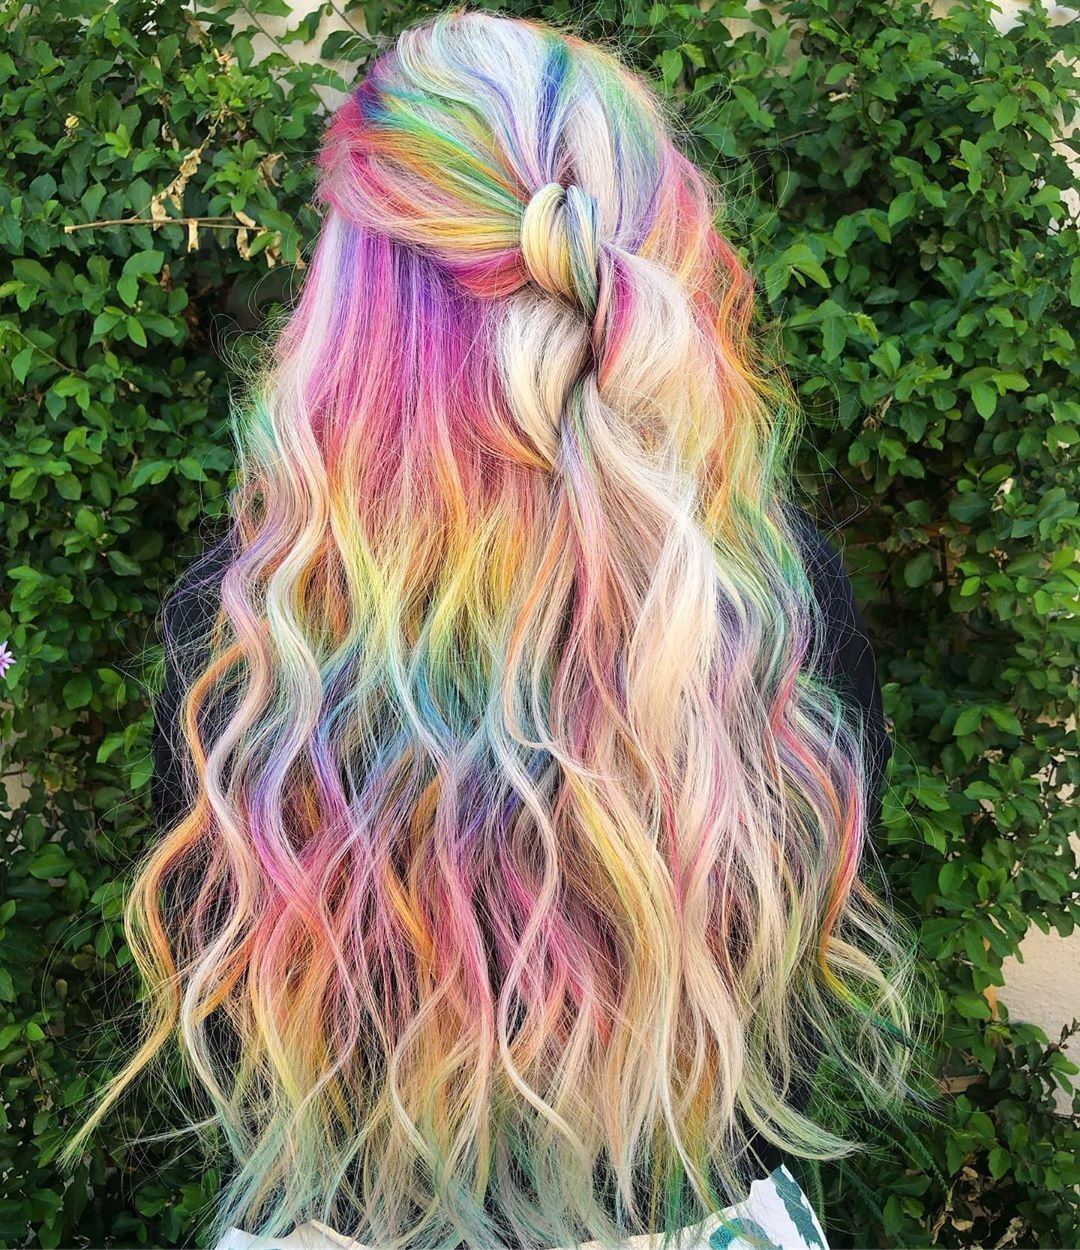 Pin by Nonie Chang on Dyed Hair in 2020 | Rainbow ...